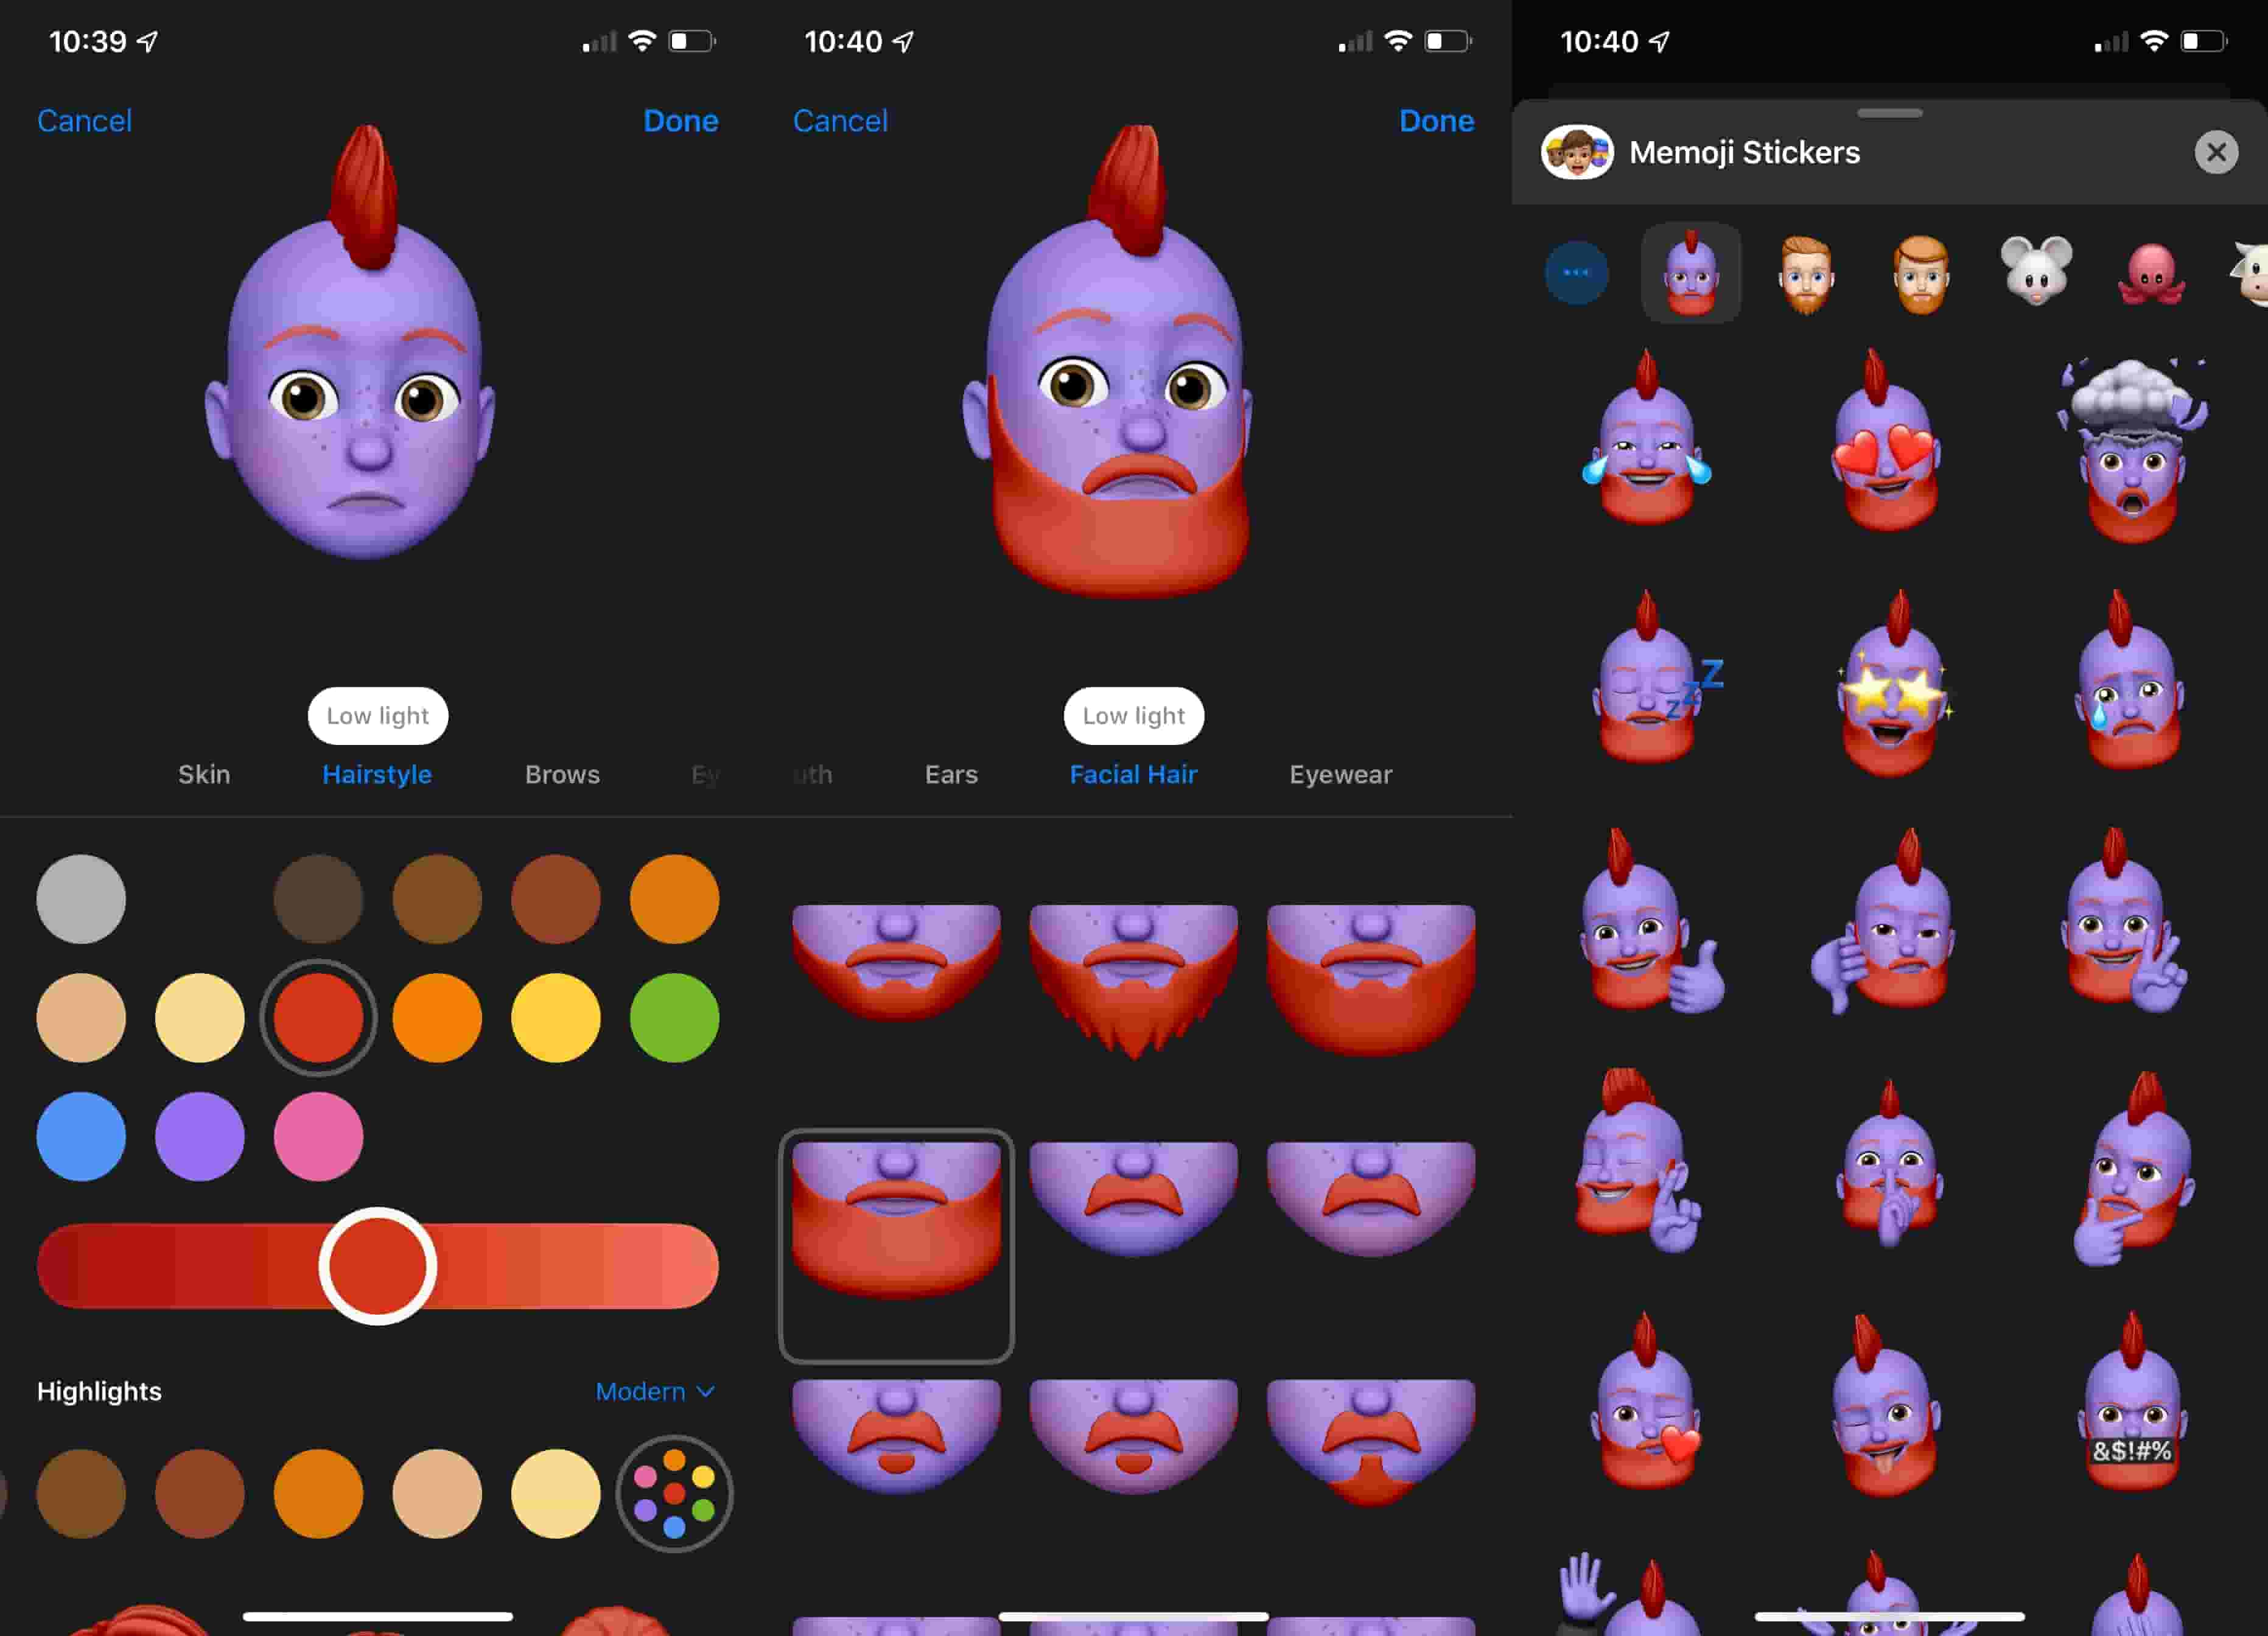 How To Edit And Create Customized Memoji In Ios 13 And